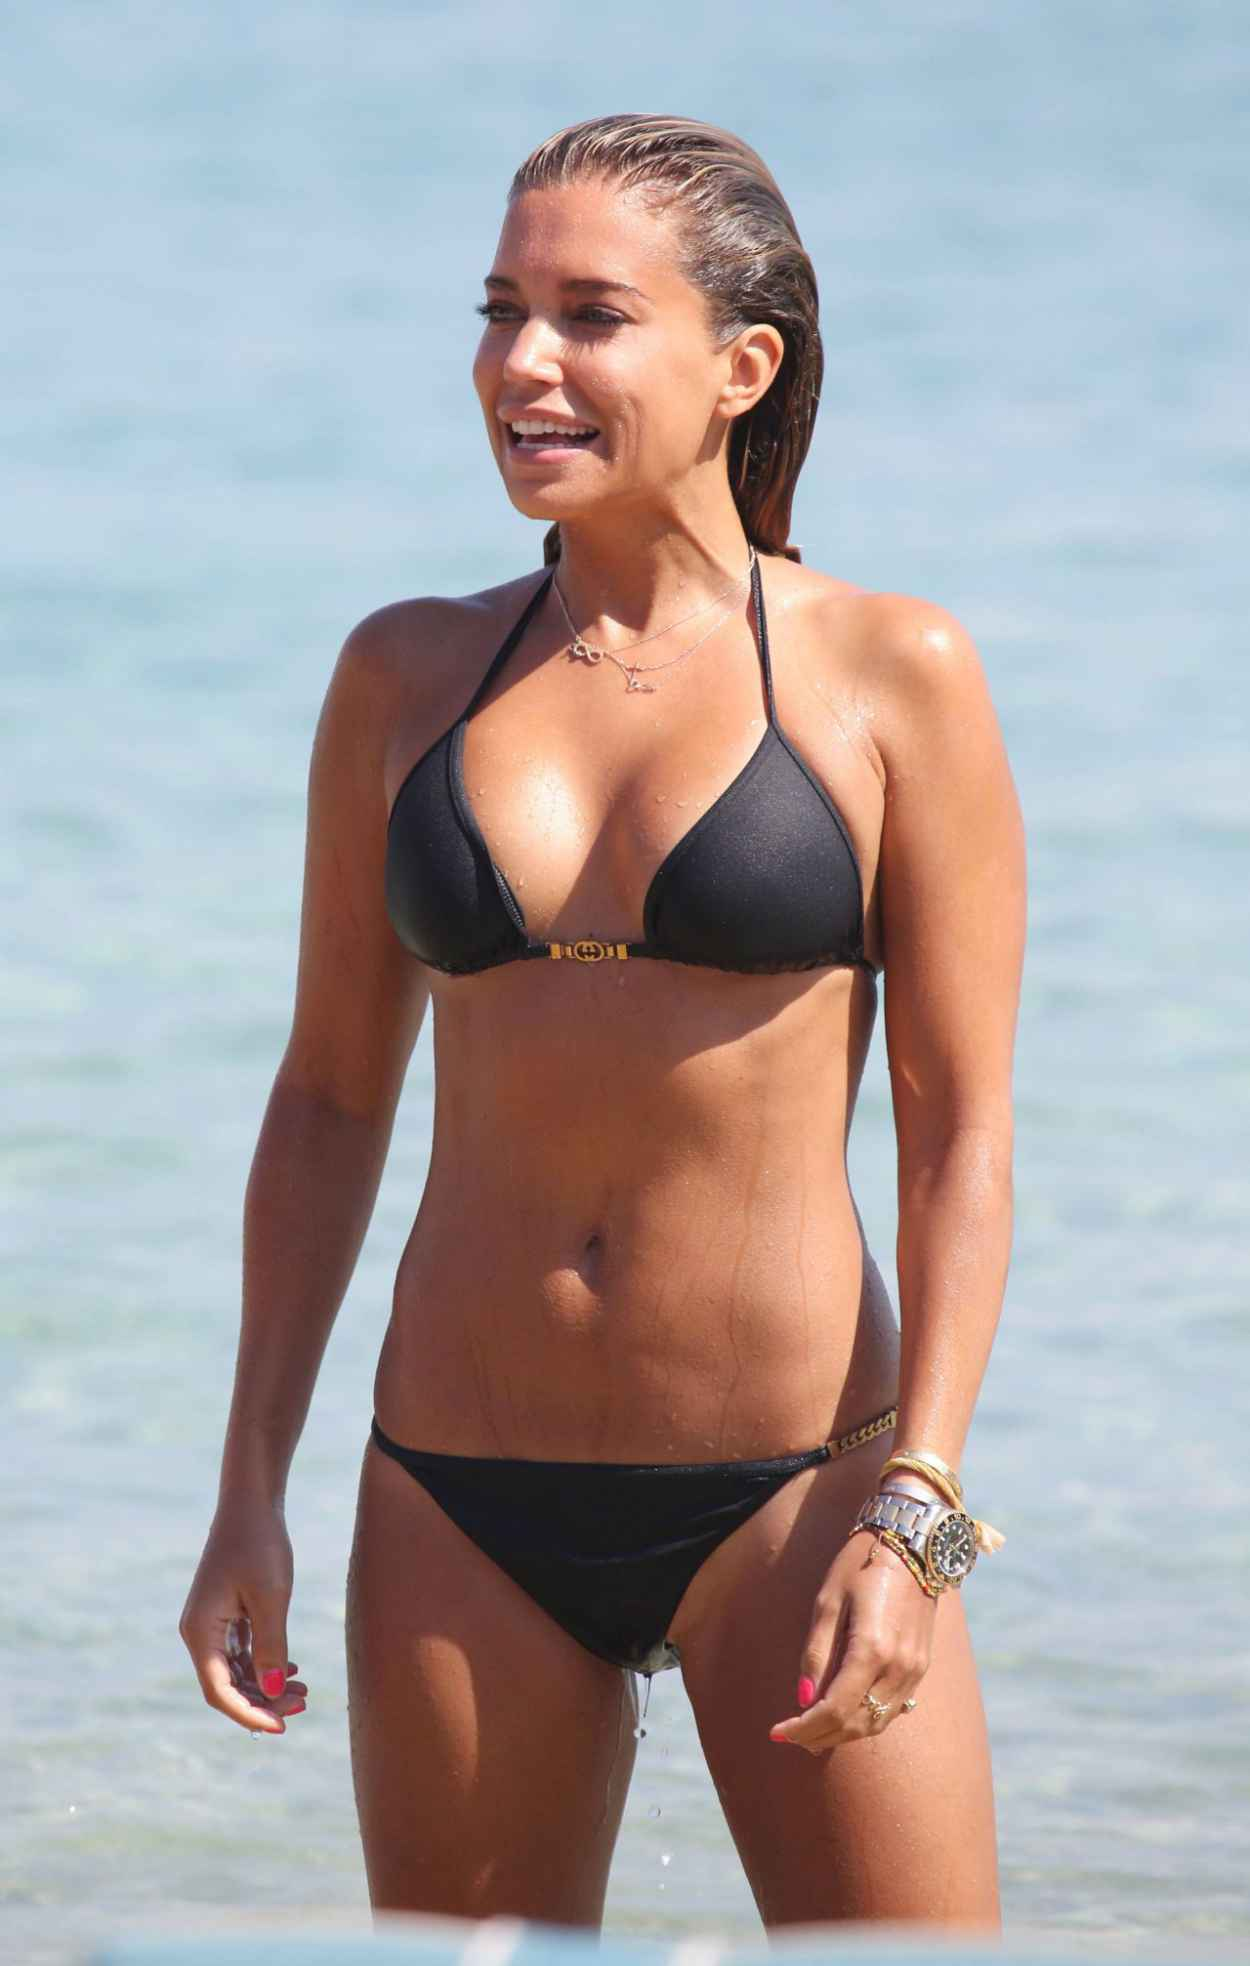 Sylvie Meis in Black Bikini on the beach in Miami Pic 29 of 35